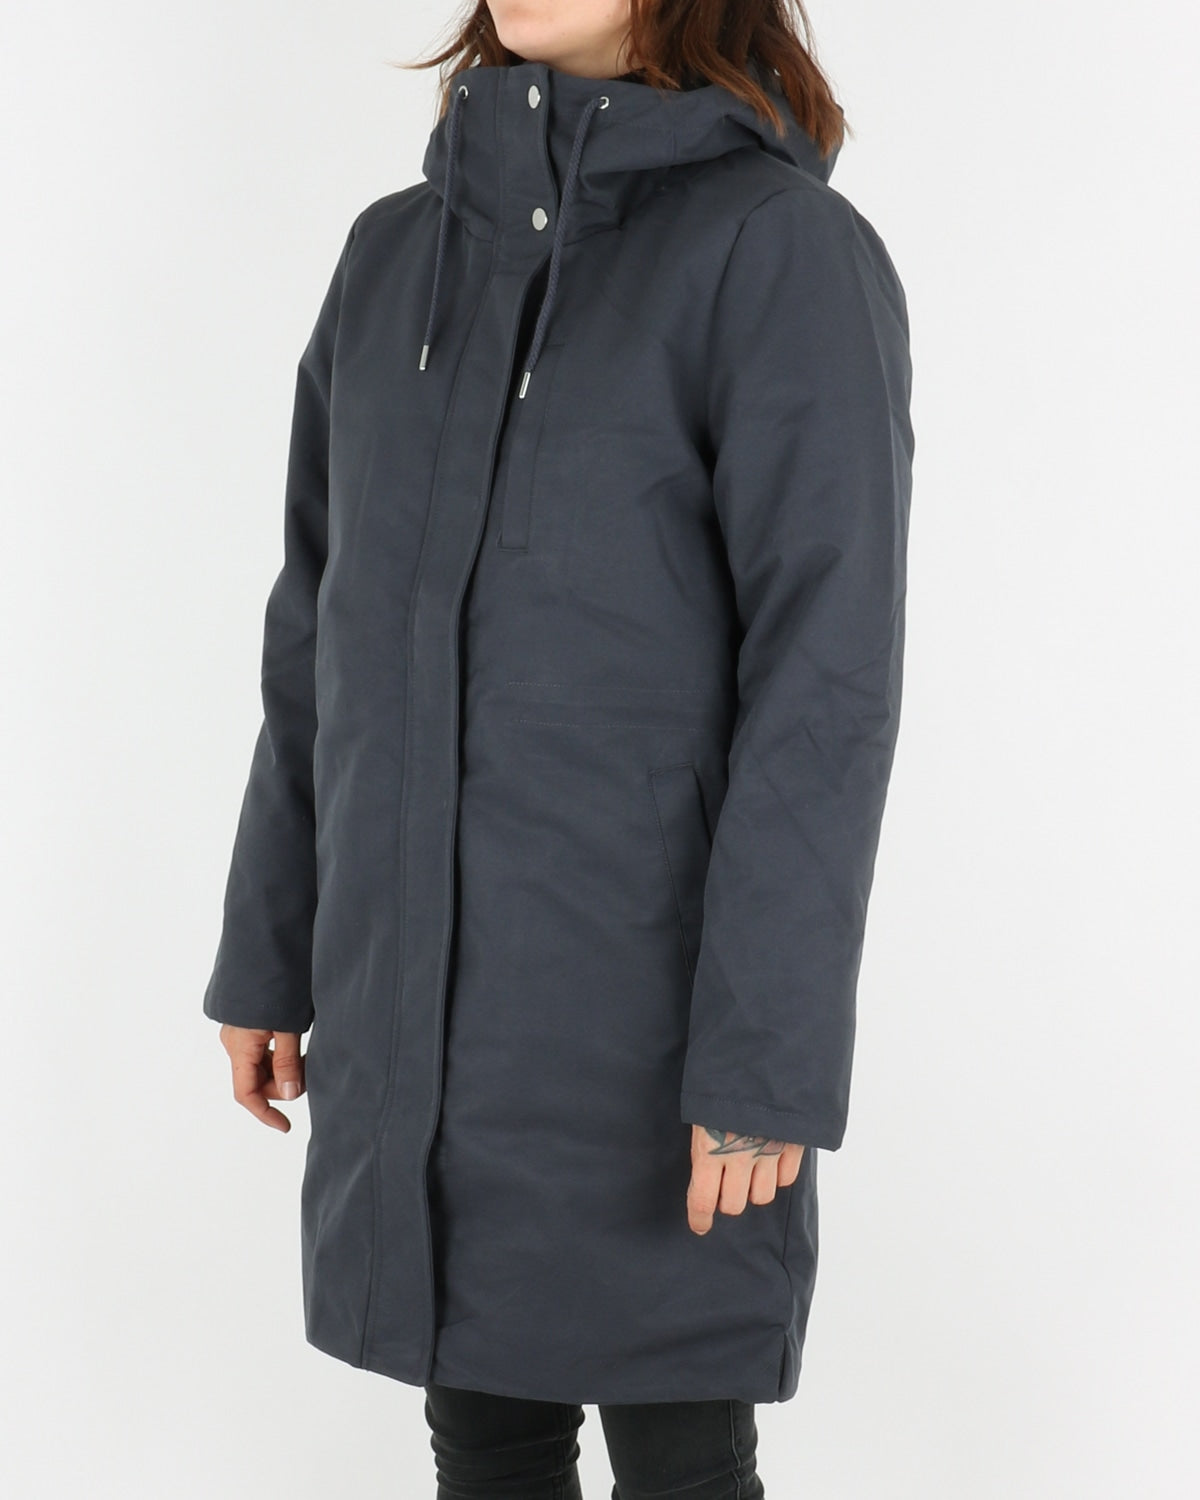 selfhood_parka jacket 77130_navy_2_4